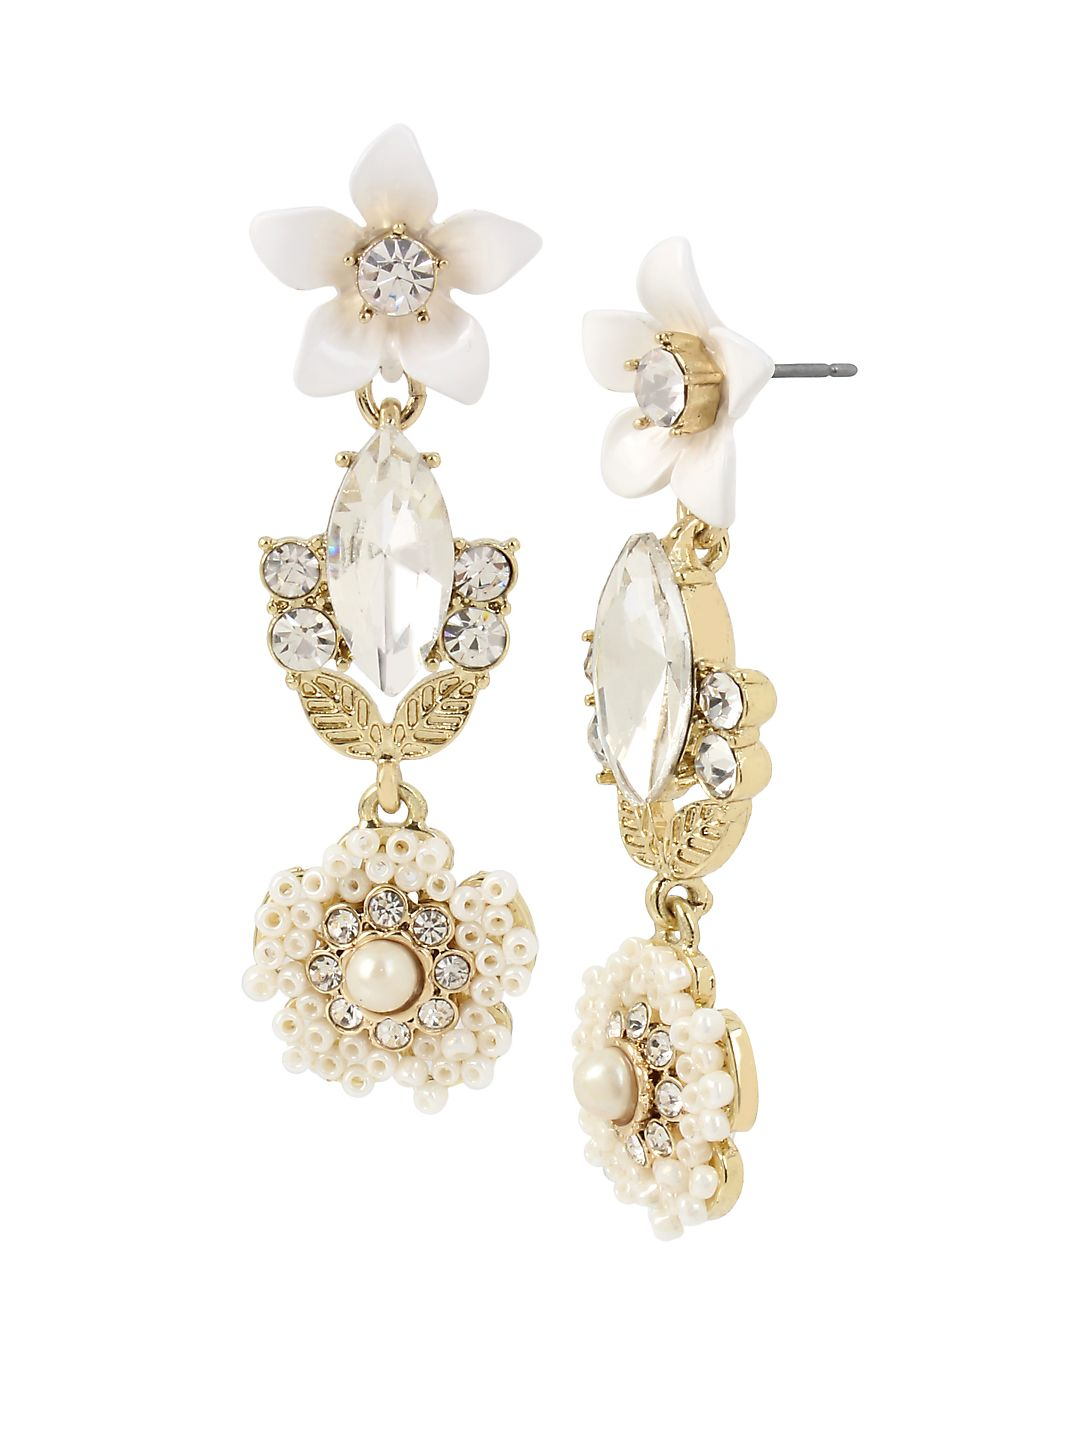 Vintage Pearl White Flower Crystal and Faux Pearl Drop Earrings